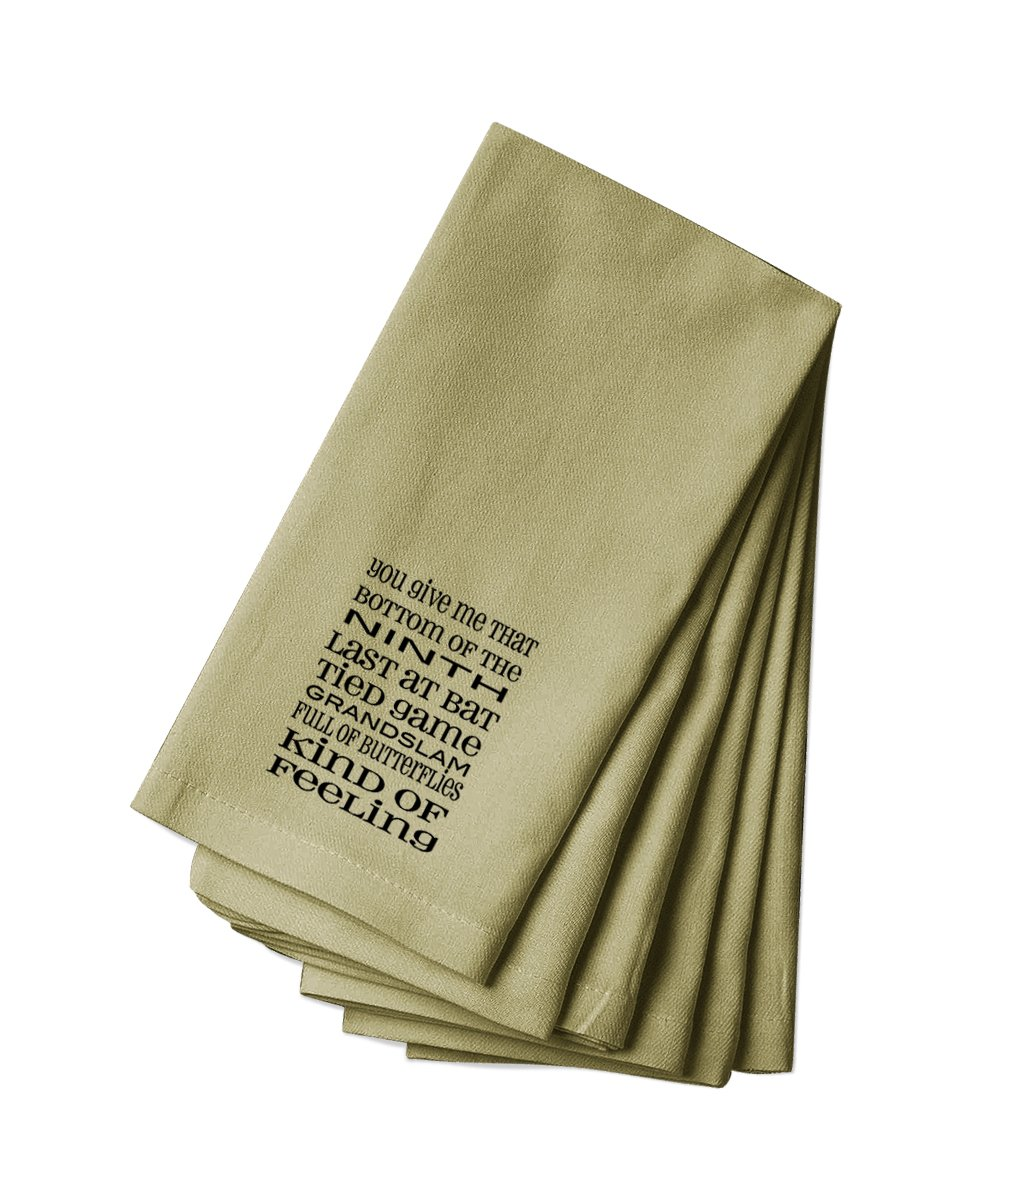 Style in Print Canvas Napkin Set Of 4 You Give Me That Bottom Last Bat Tied Game Grandslam